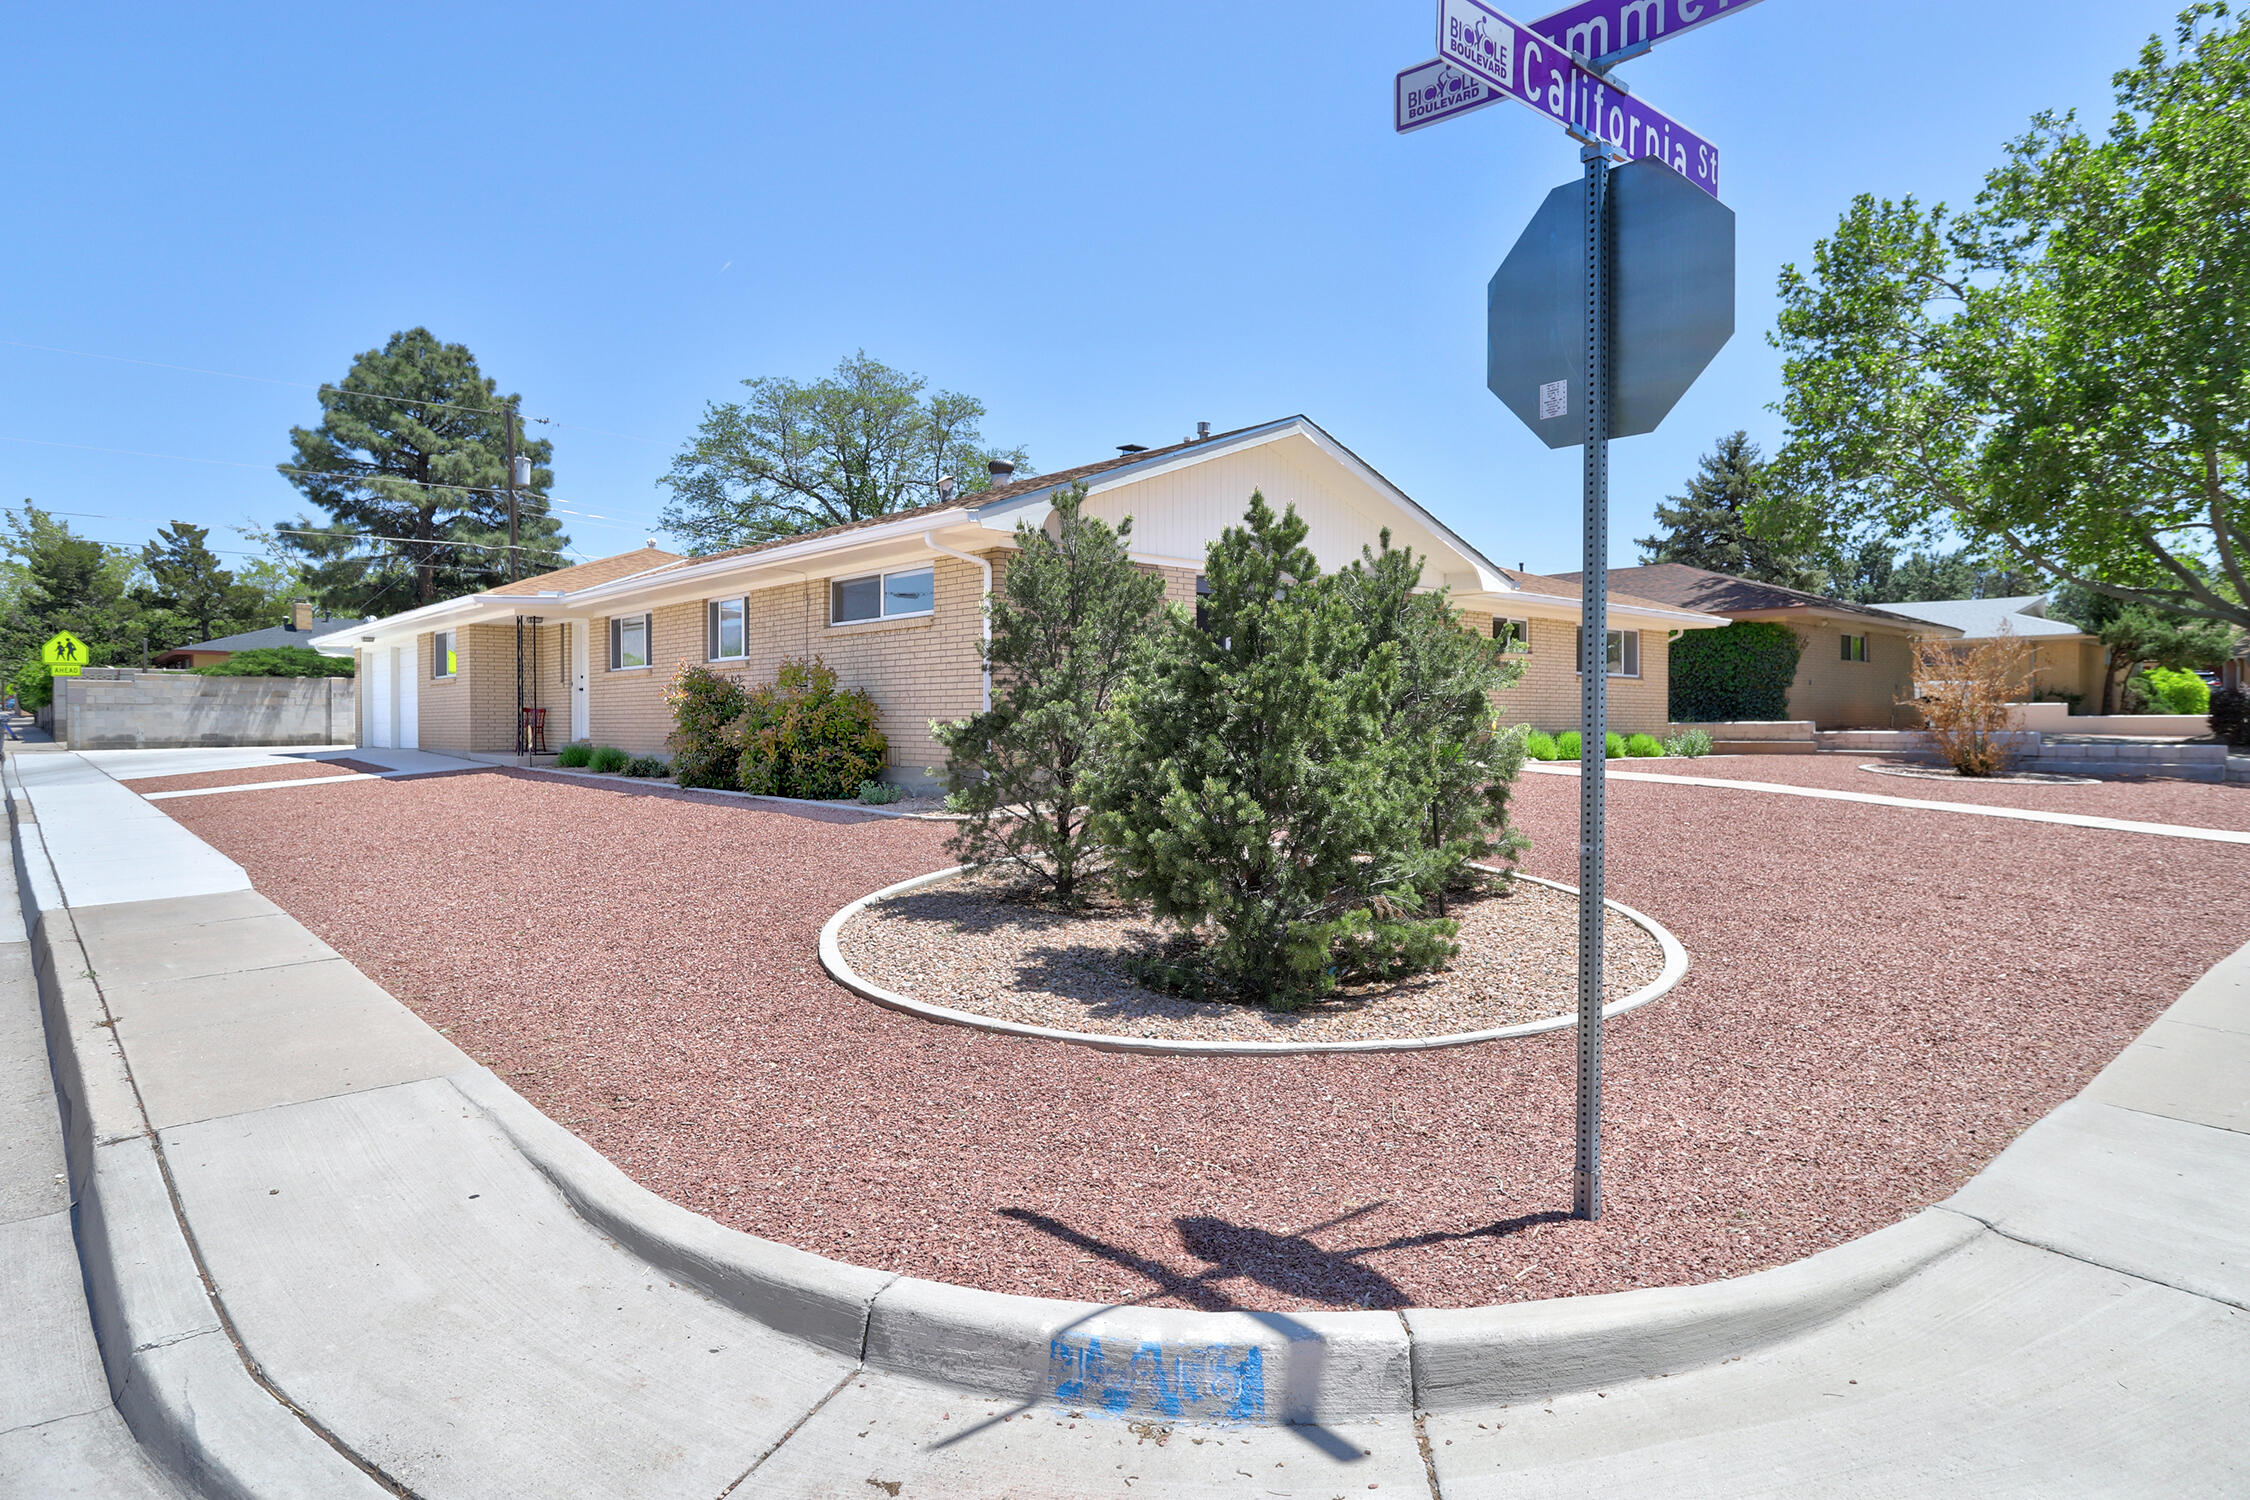 In a single word, - WoW!  Better than NEW updated home in established NE Heights neighborhood!  Light & Brightness shine through every room of this lovely remodeled home on a corner lot.  3 bedrooms plus  separate entrance w/bedroom/office + half bath perfect for home office or in-law quarters.  Newer windows, refrigerated A/C (2 combo units), wood (real wood) floors, electrical service, sewer line, updated kitchen, updated baths, and much more.    2 living areas. Remodeled kitchen w/new custom cabinets, granite & upgraded appliances.   Formal dining room + breakfast nook.   Heated & cooled sunroom perfect for gym, home school room, office or just relaxing.  Awesome backyard access w/gate & concrete pad.  Incredible storage throughout-Low maintenance yards front & back.